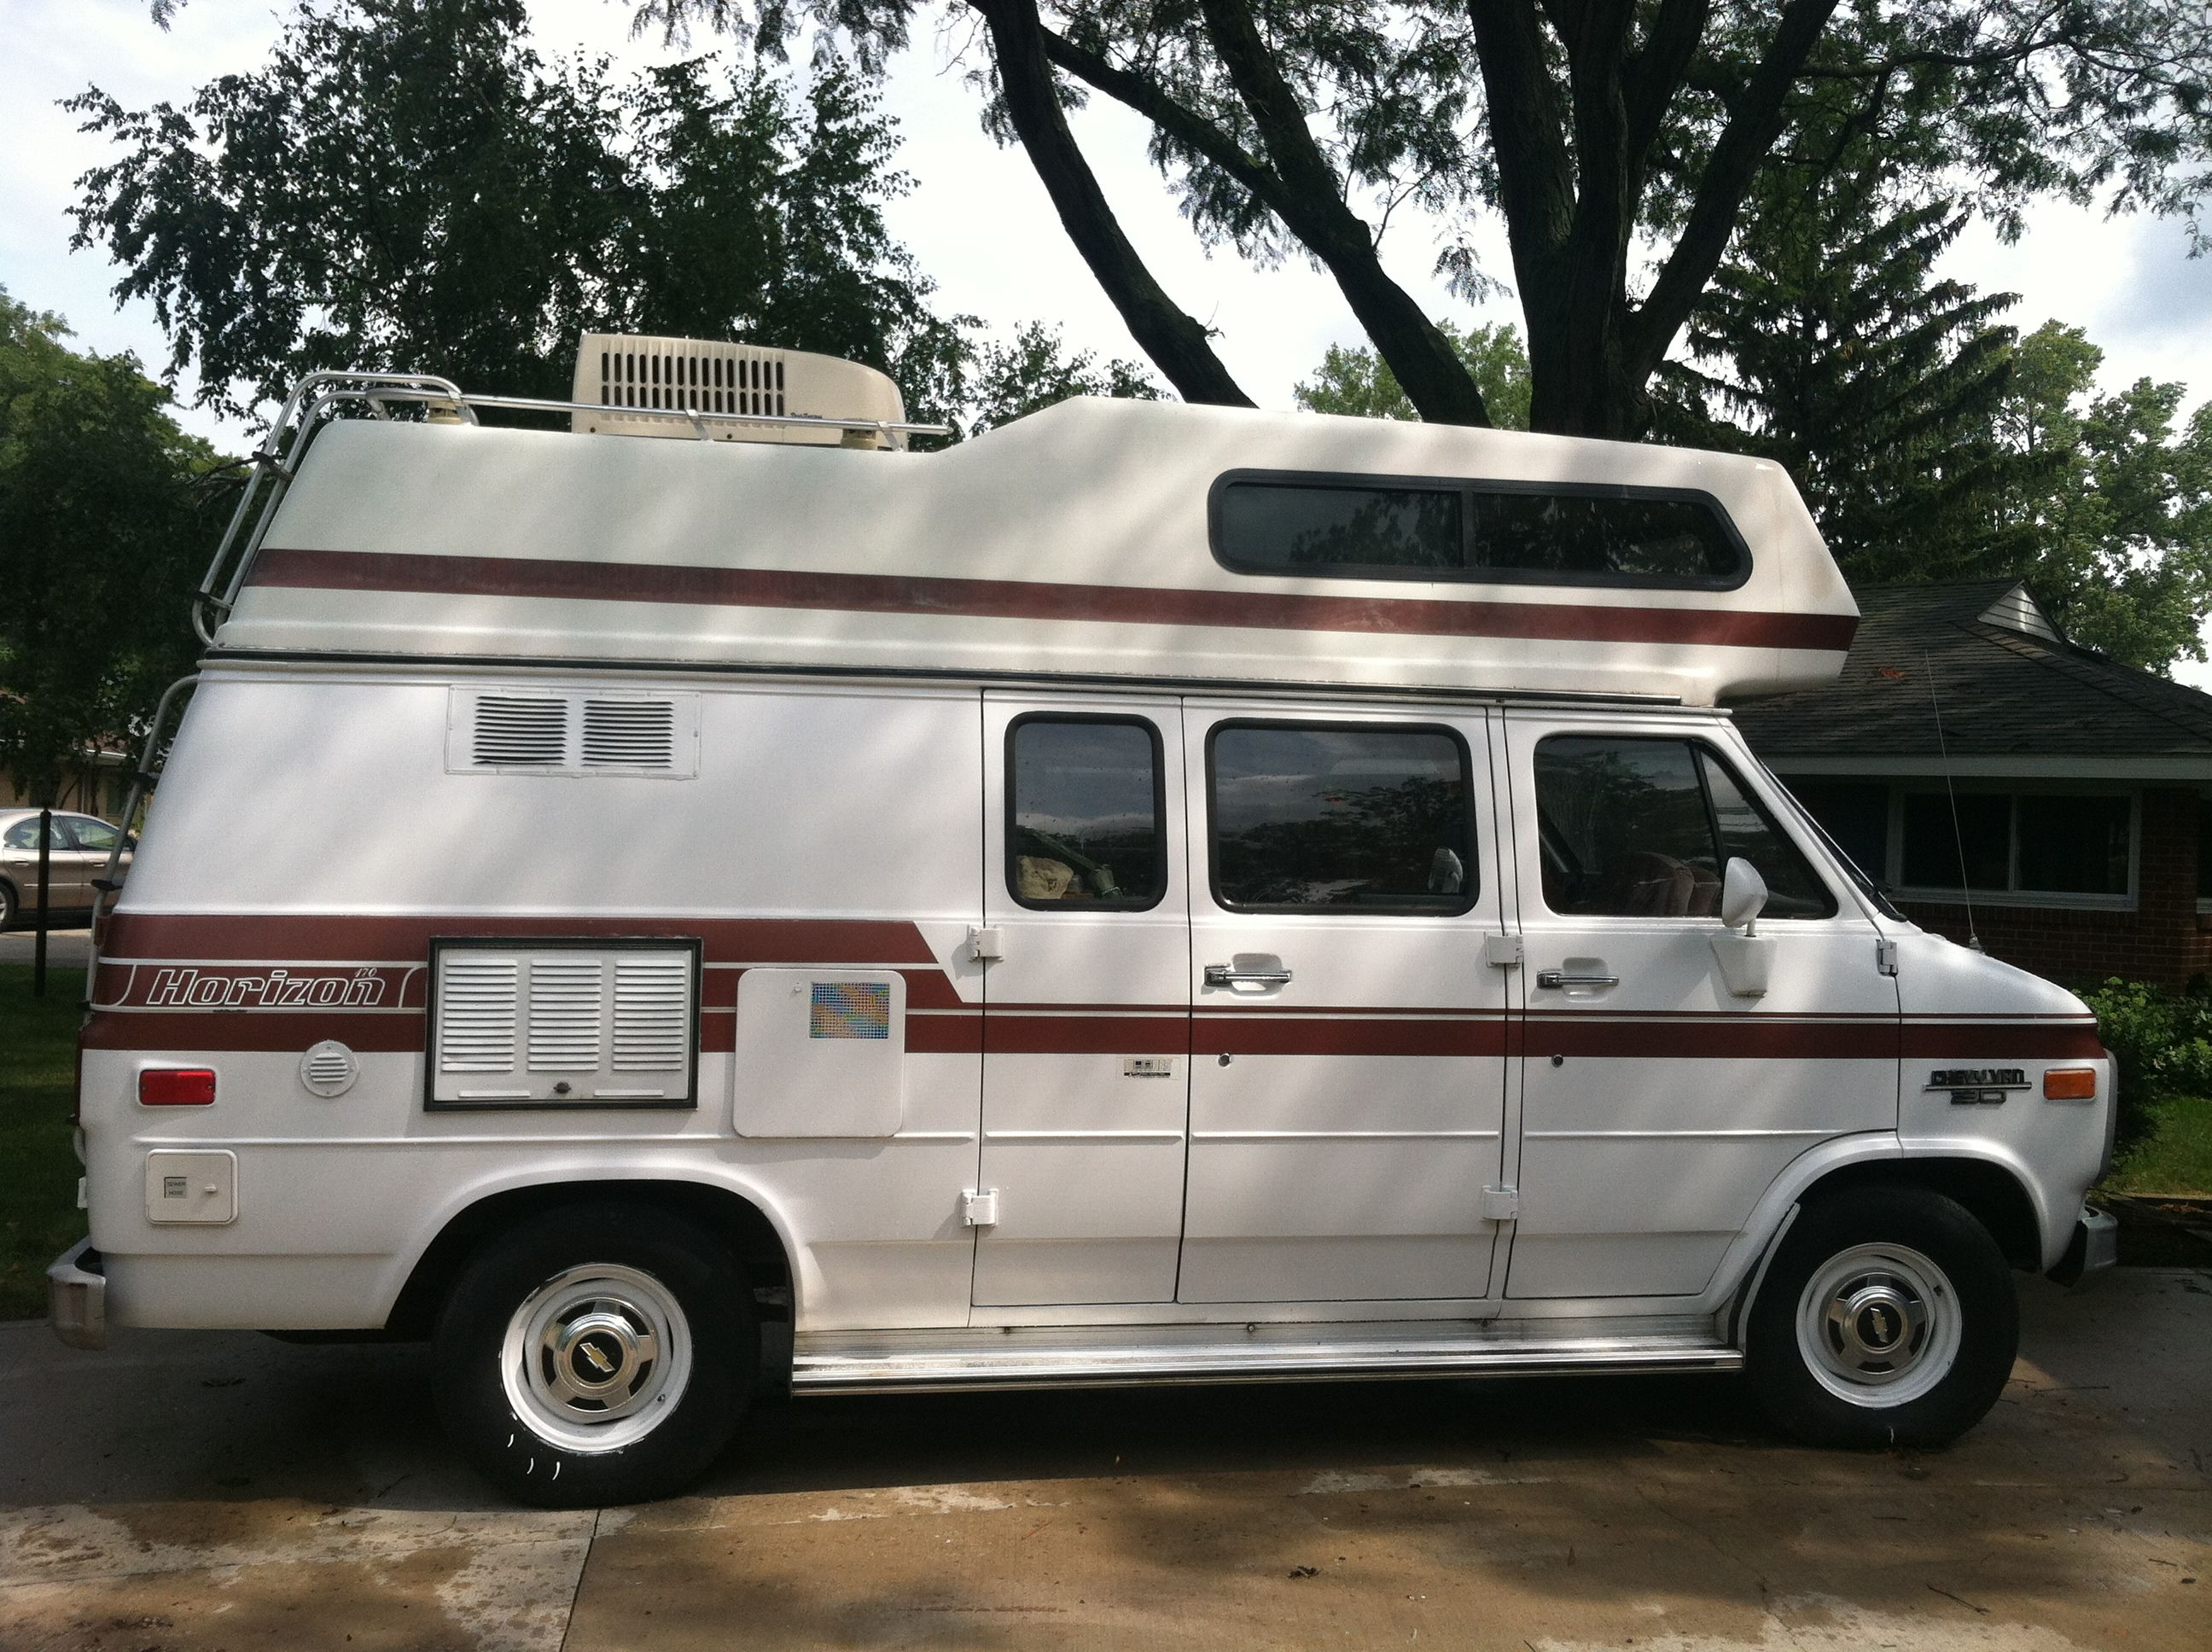 Our 1989 Chevy Horizon Camper Van  | Our Camper Van | Camper caravan